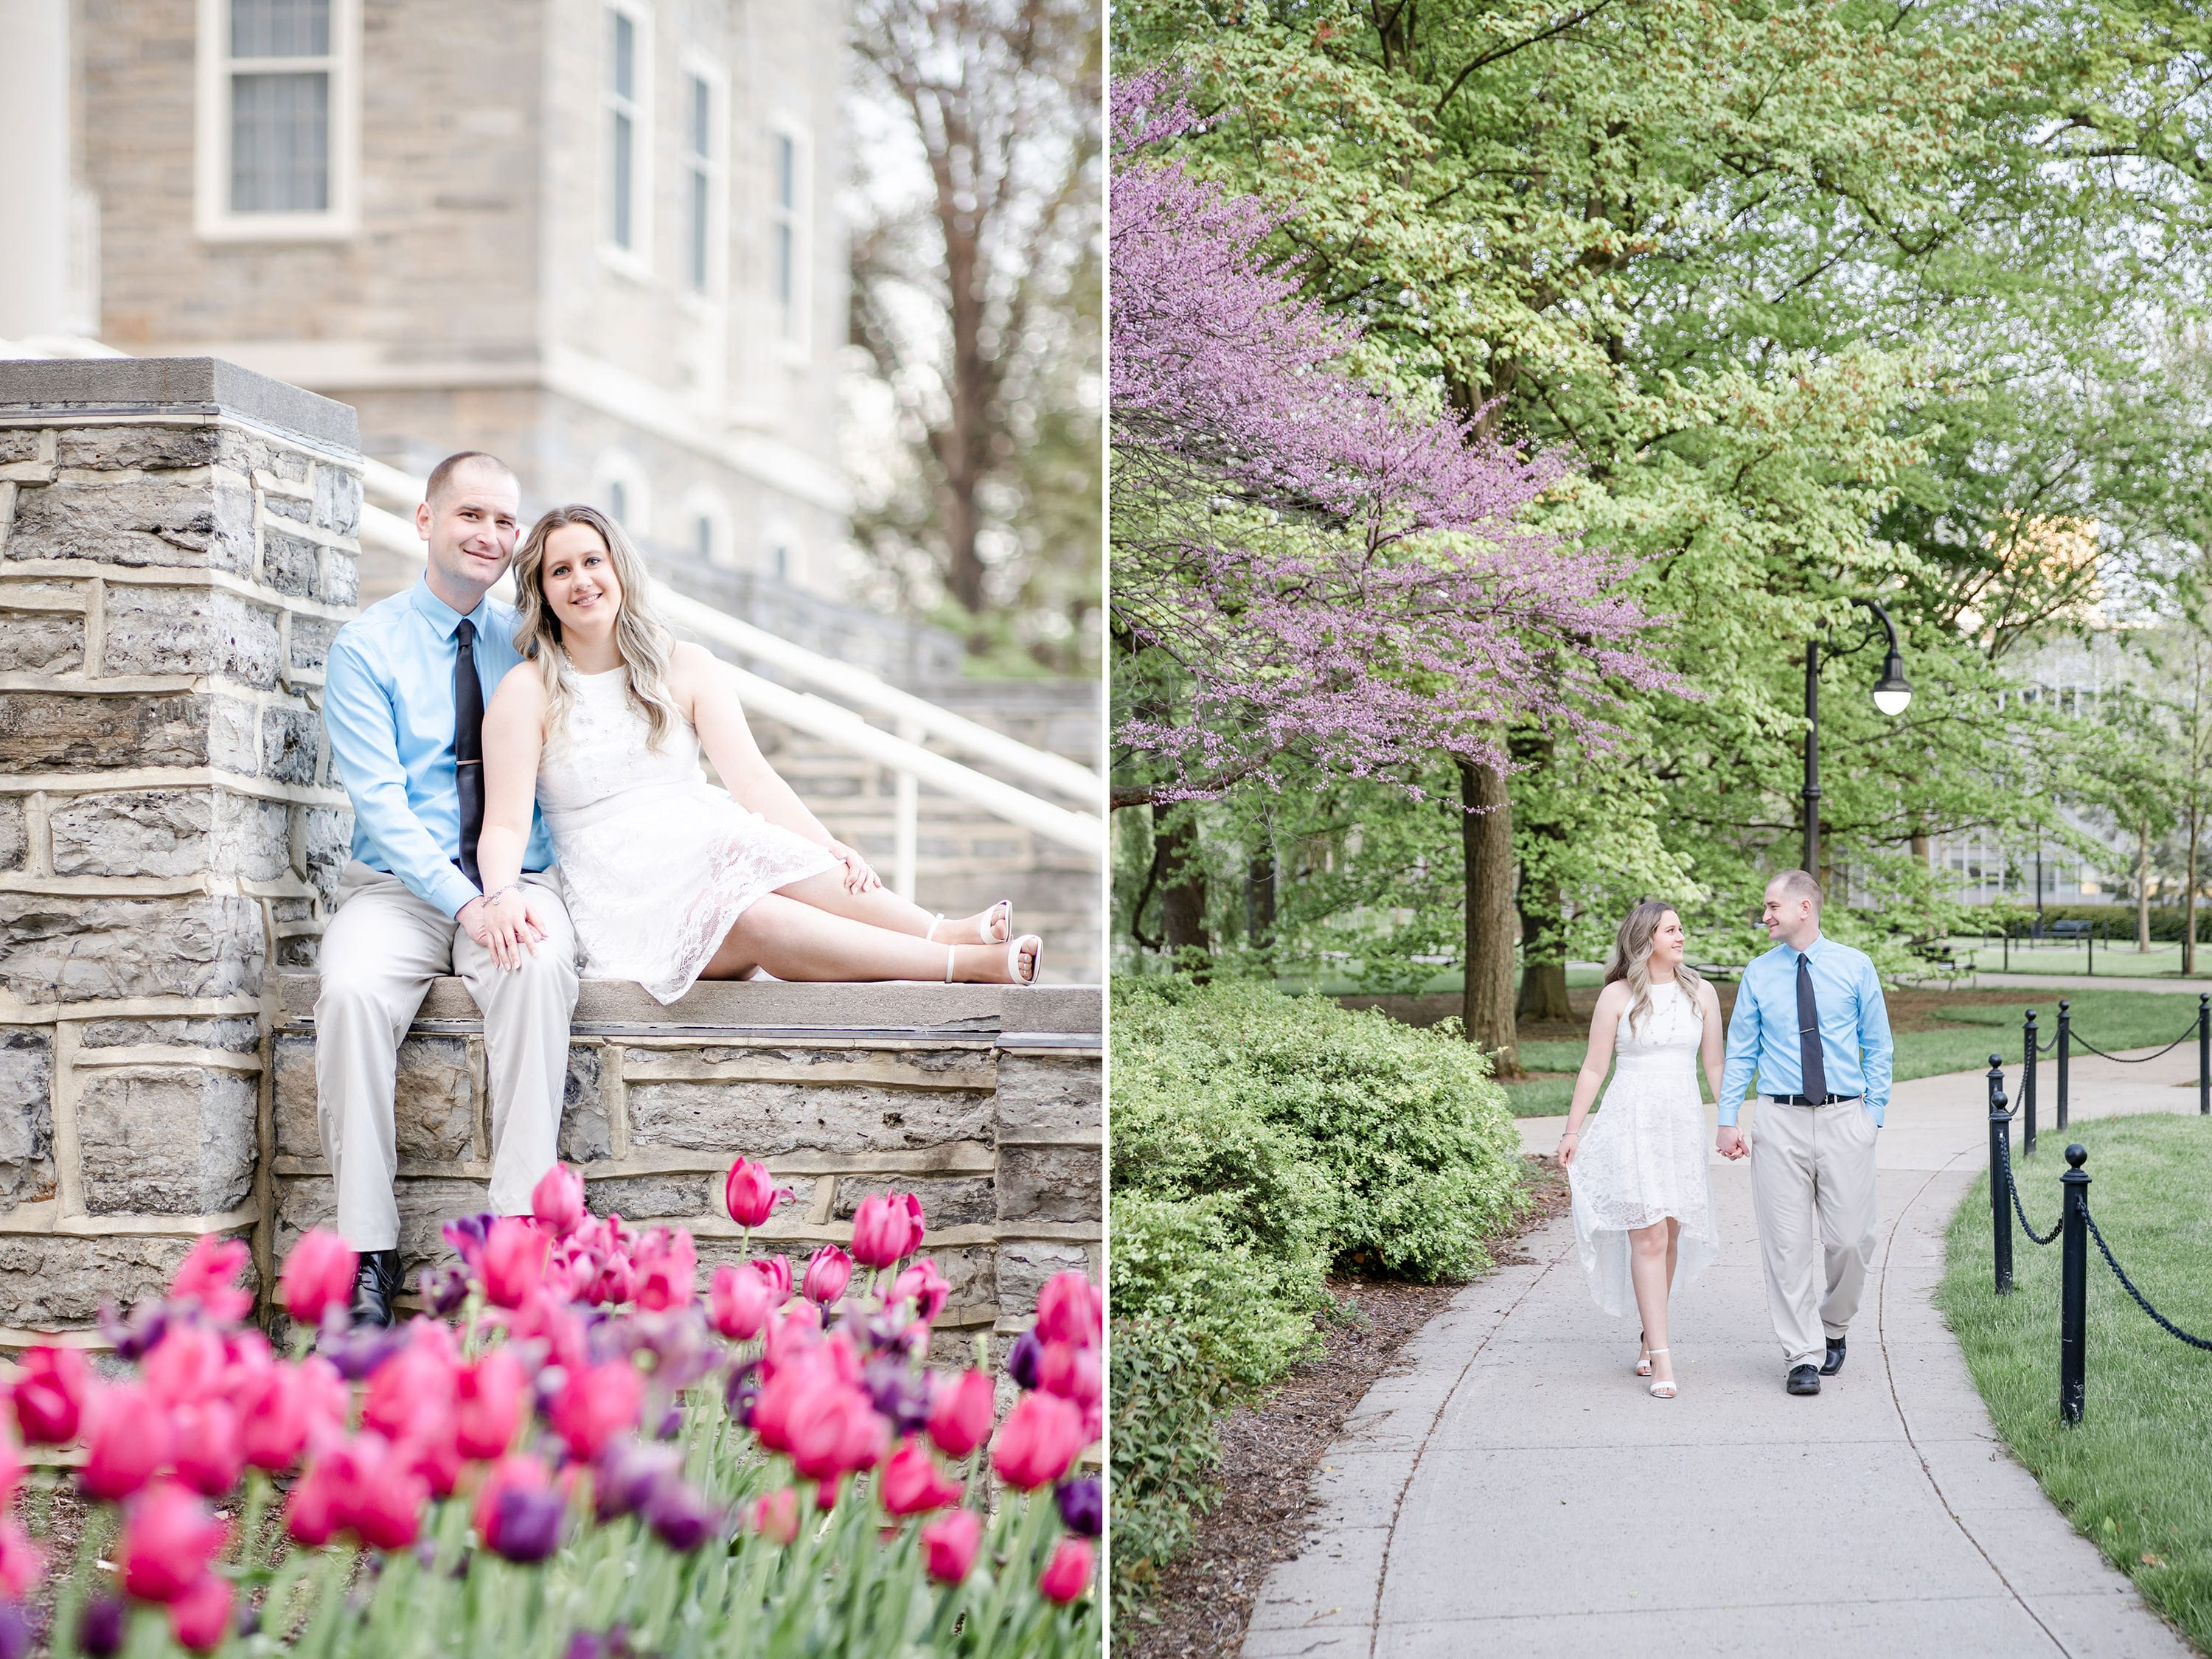 Engagement photo at Penn State Old Main